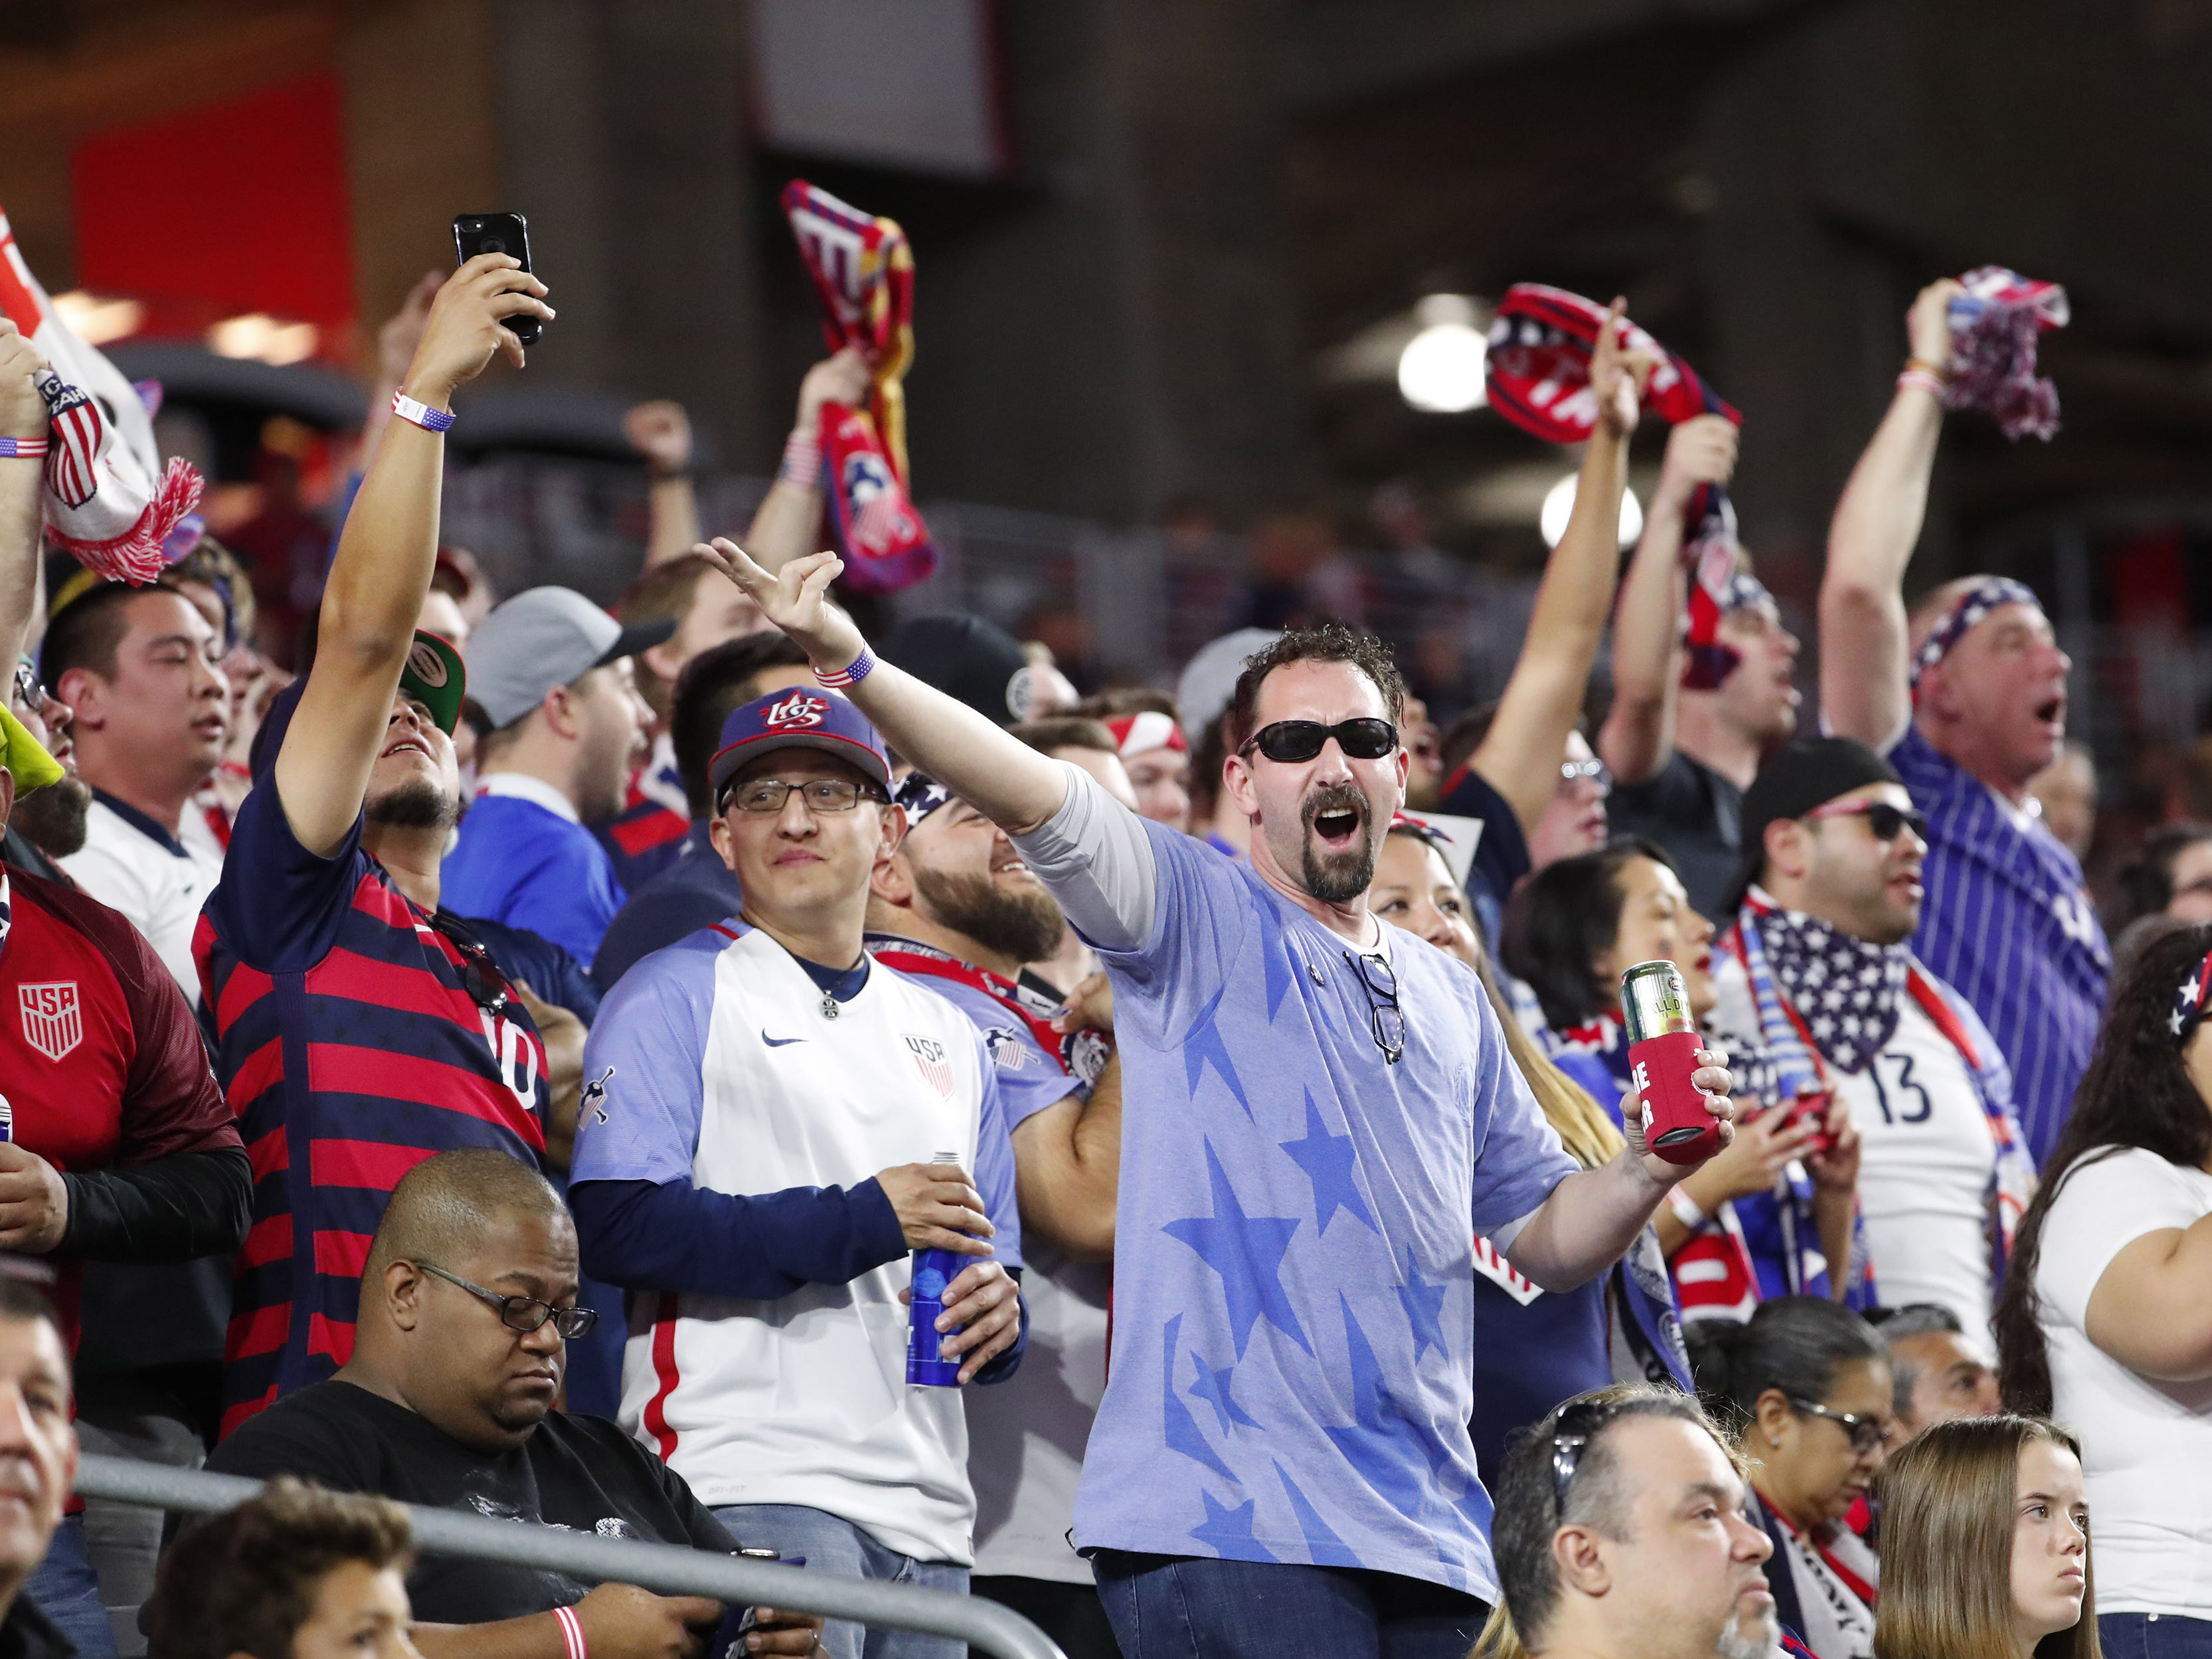 Fans cheer during a friendly between the U.S. Men's National Team and Panama Jan. 27 in Glendale, Ariz.